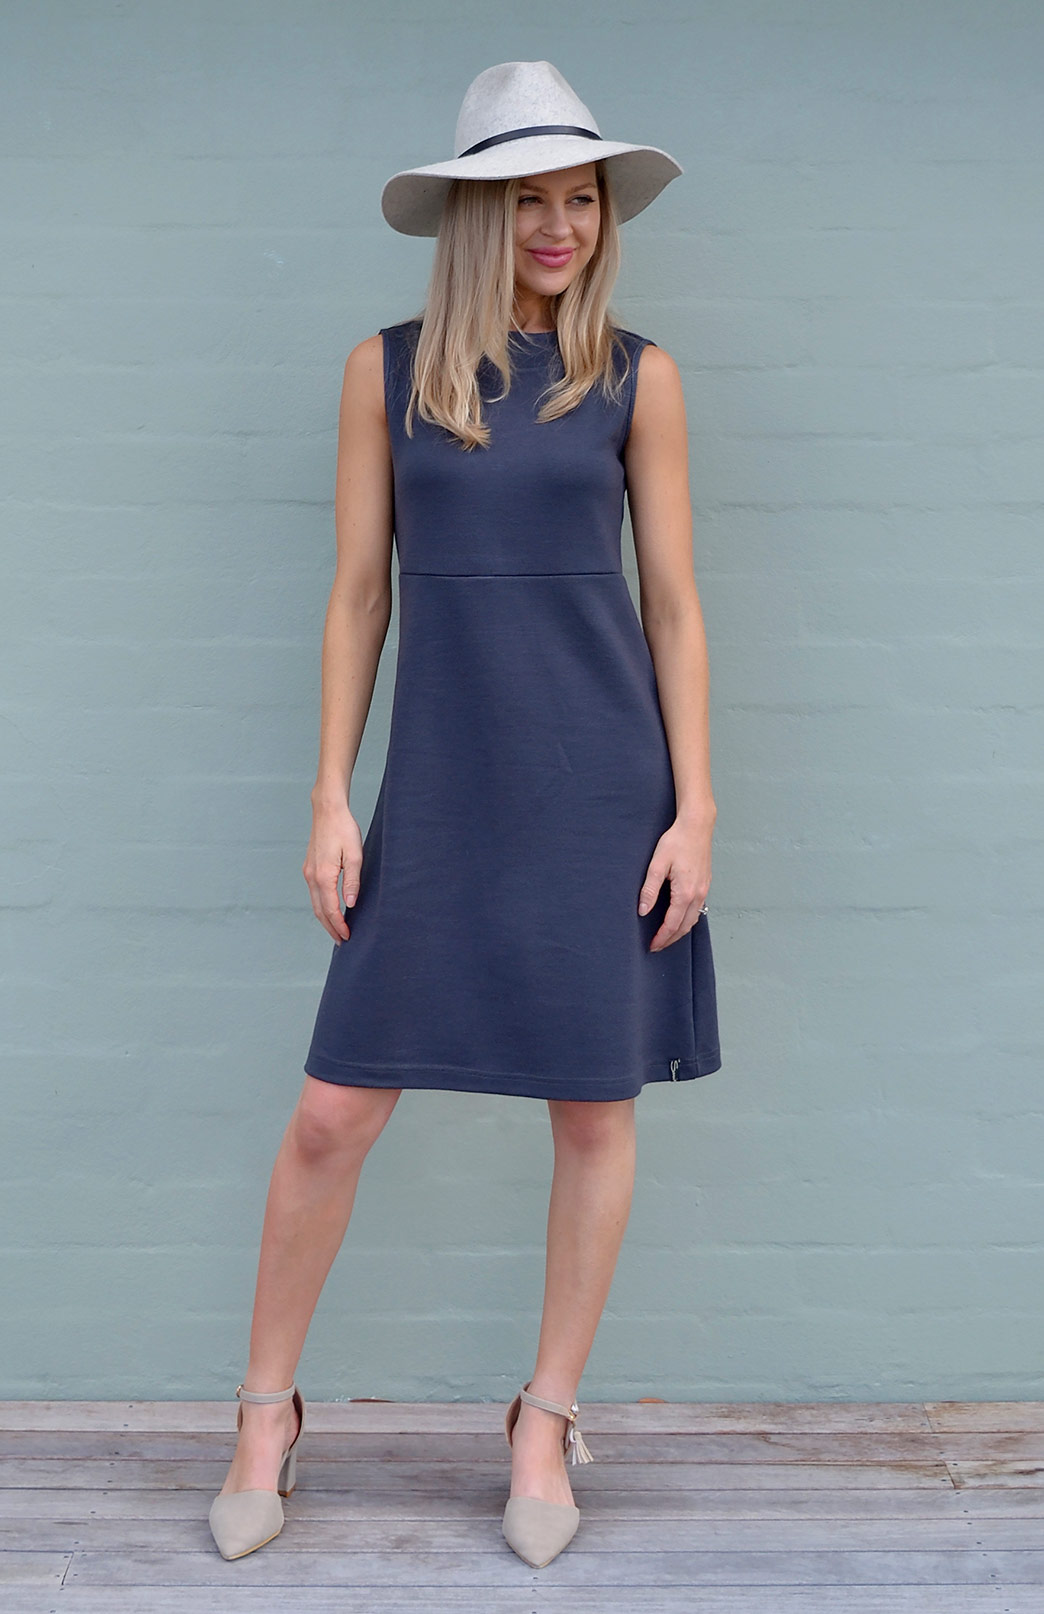 Asha Straight Dress - Women's Steel Grey Straight Wool Dress - Smitten Merino Tasmania Australia